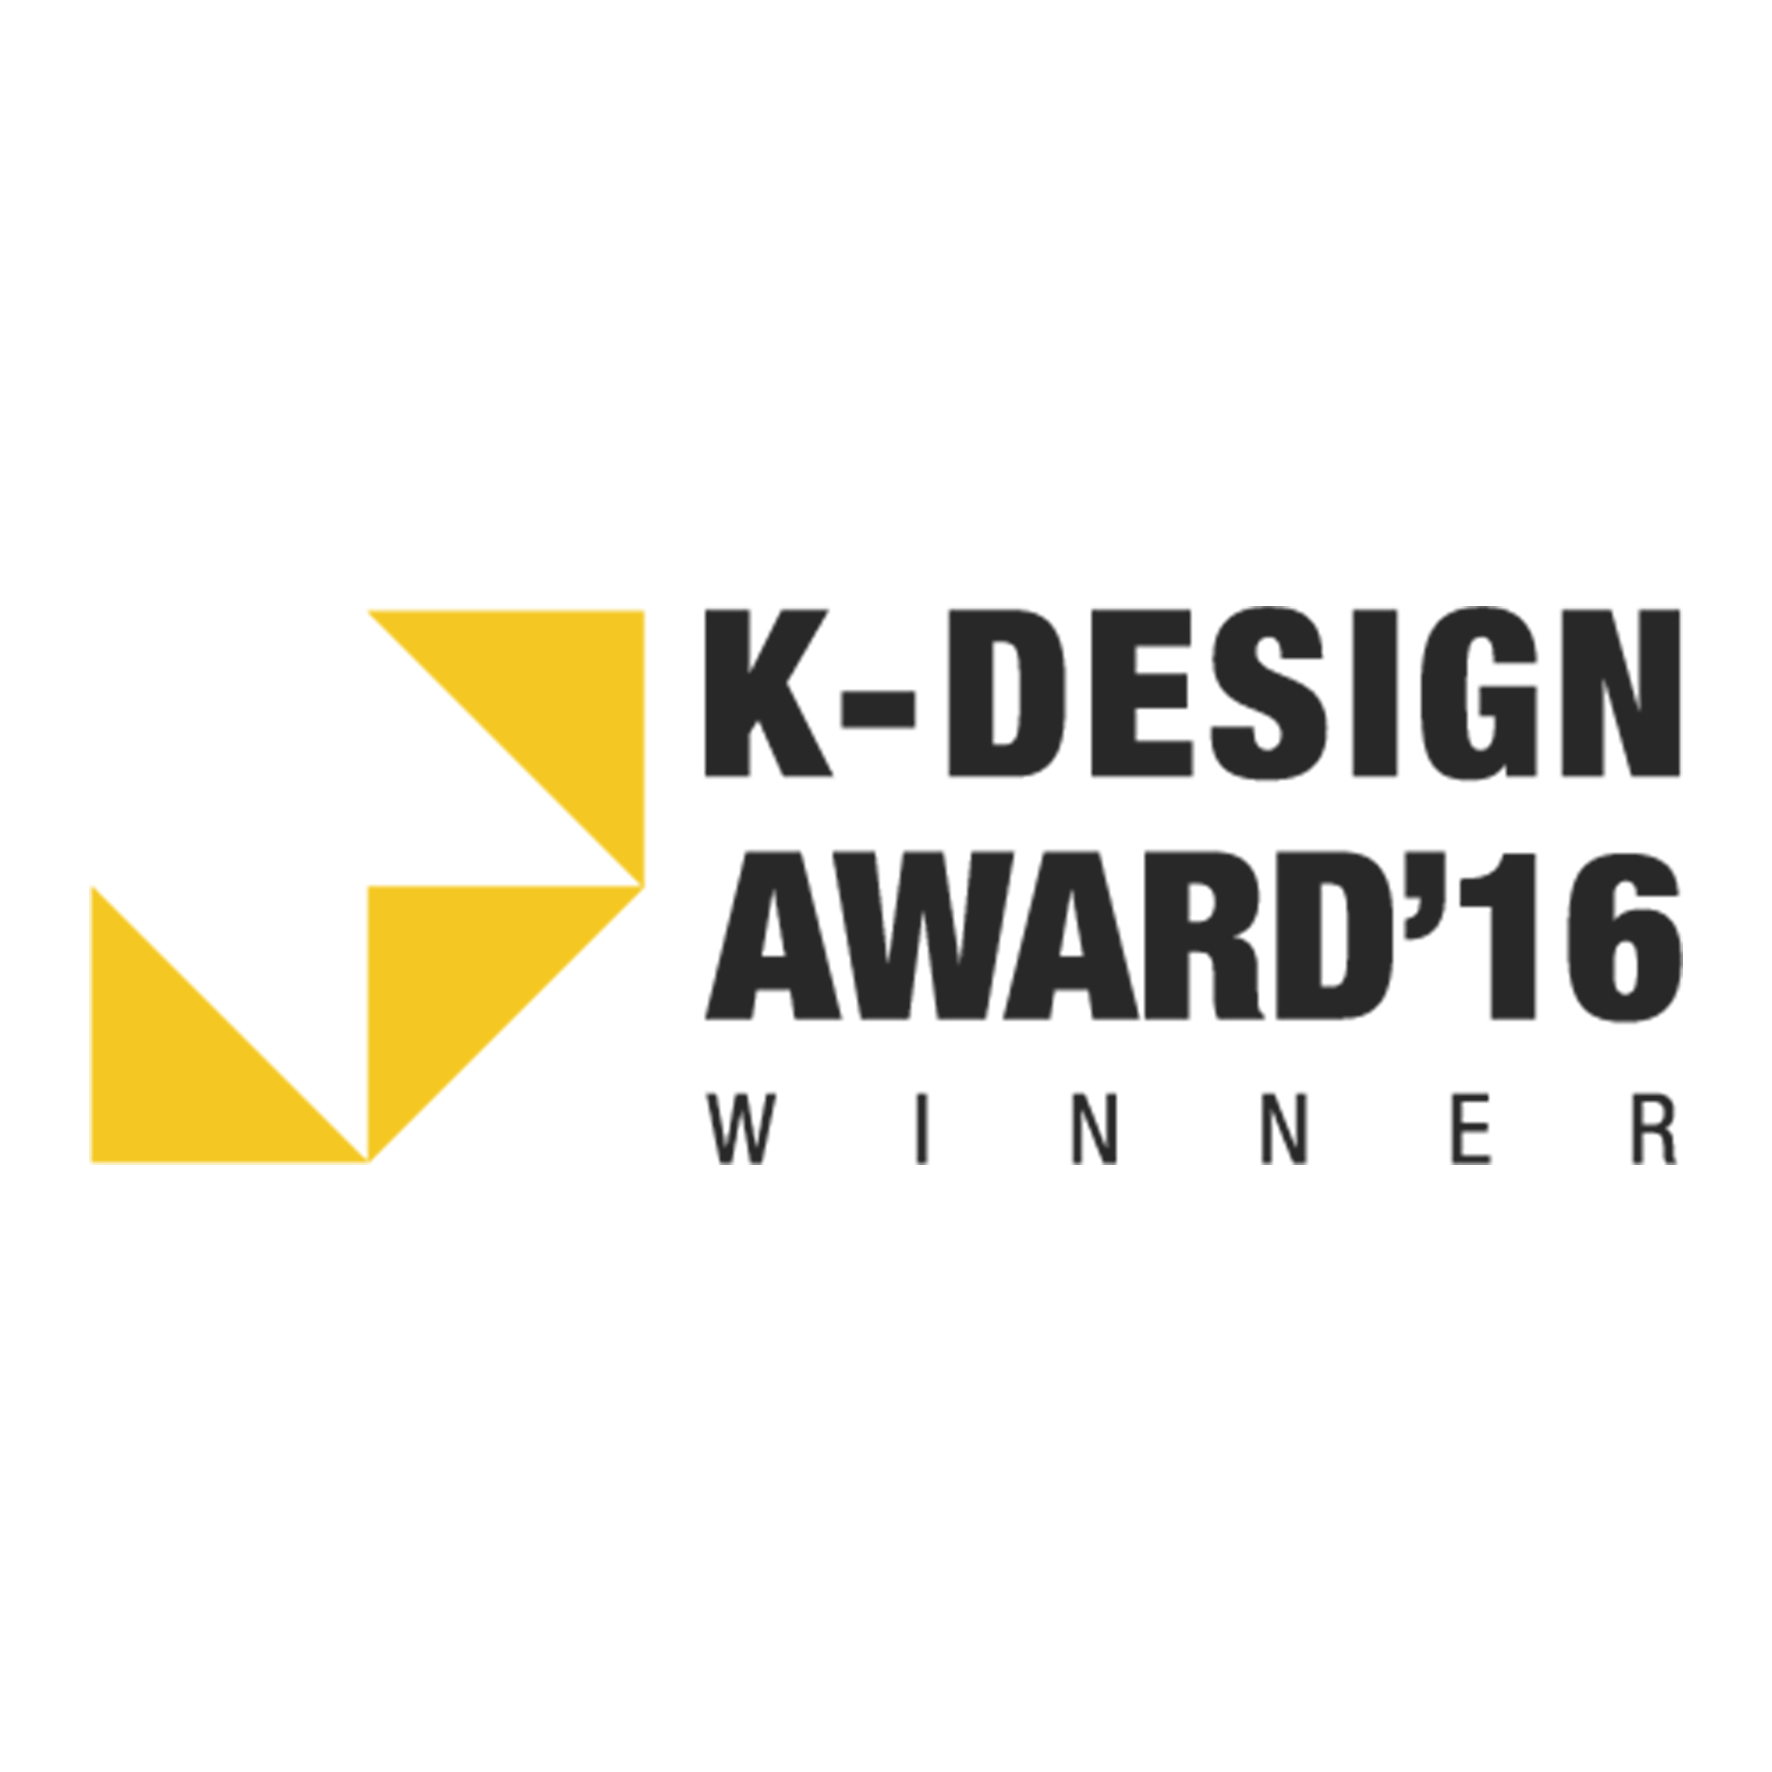 Award Winner, K-Design Award 2016(优胜者 – 2016年K设计大奖)